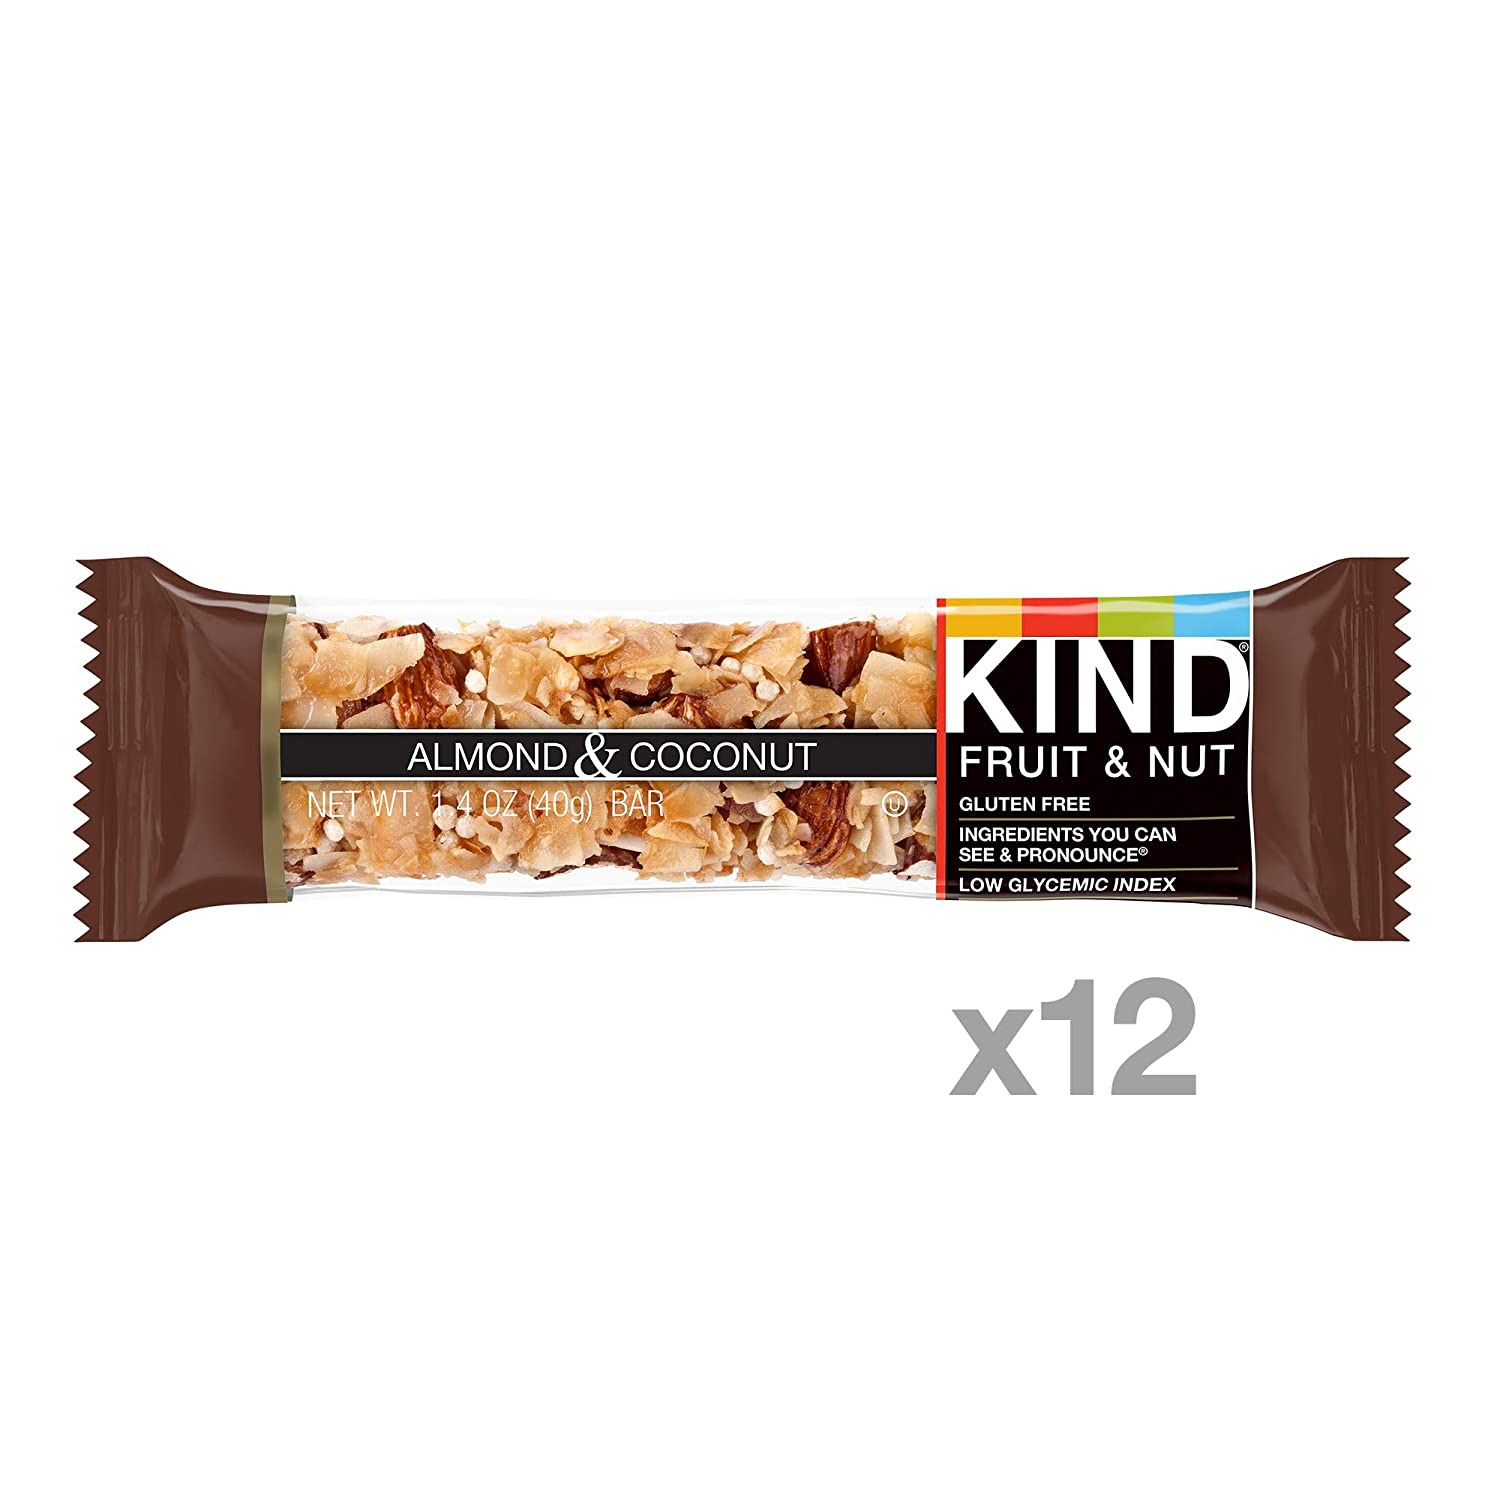 KIND Fruit & Nut, Almond & Coconut, All Natural, 39 g Gluten Free Bars, (Pack of 12): Amazon.es: Electrónica